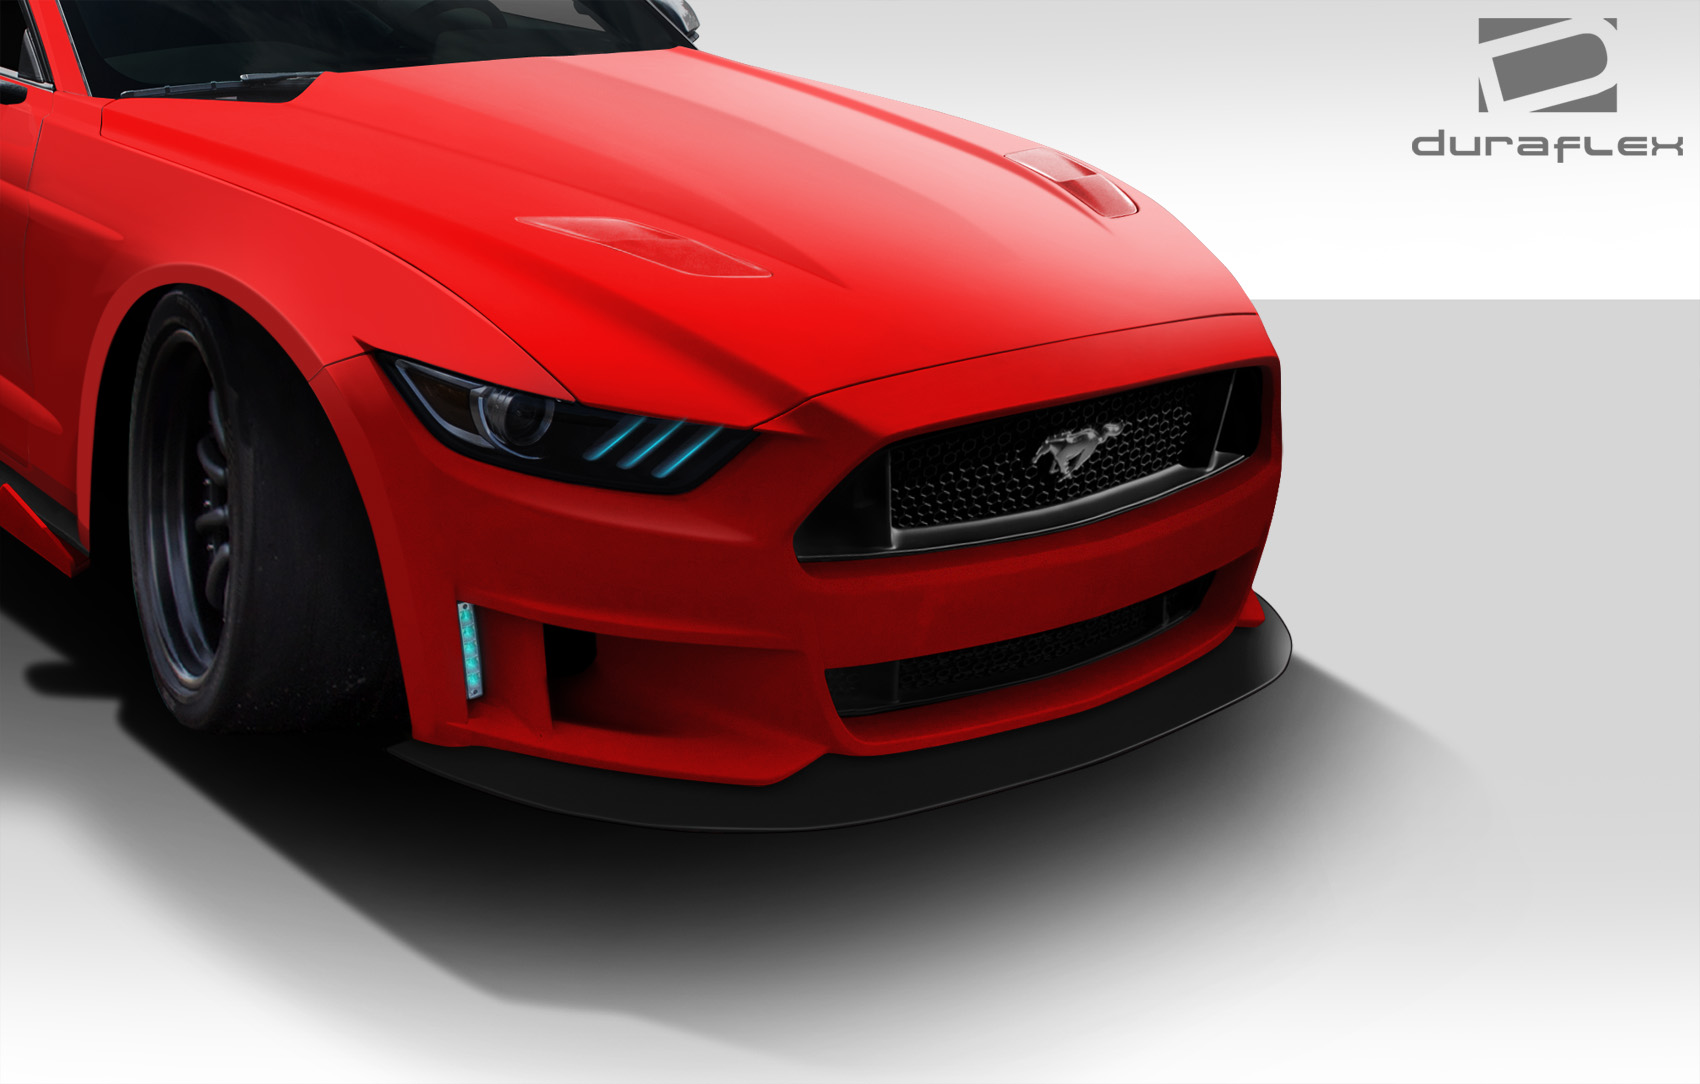 2015-2017 Ford Mustang Duraflex Grid Front Bumper Cover - 1 Piece